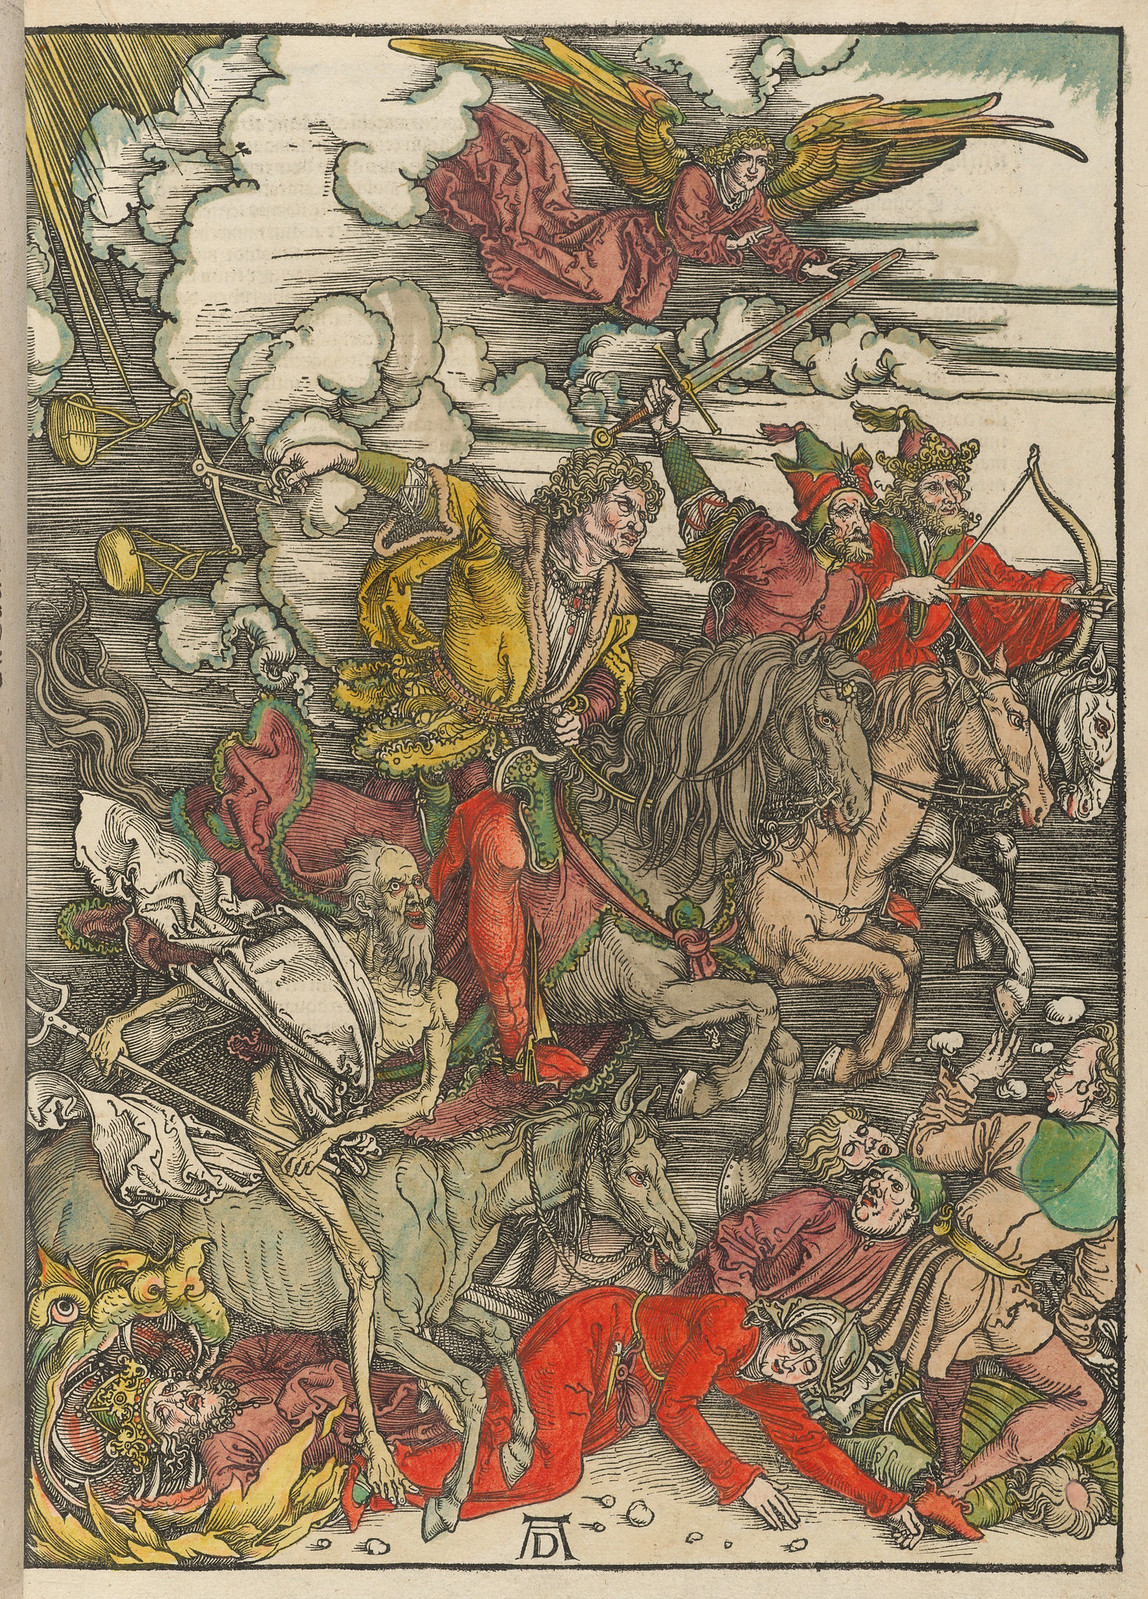 Albrecht Dürer - The Four Horsemen, Plate four of fifteen from the Latin edition of The Apocalypse series, hand colored, printed 1511